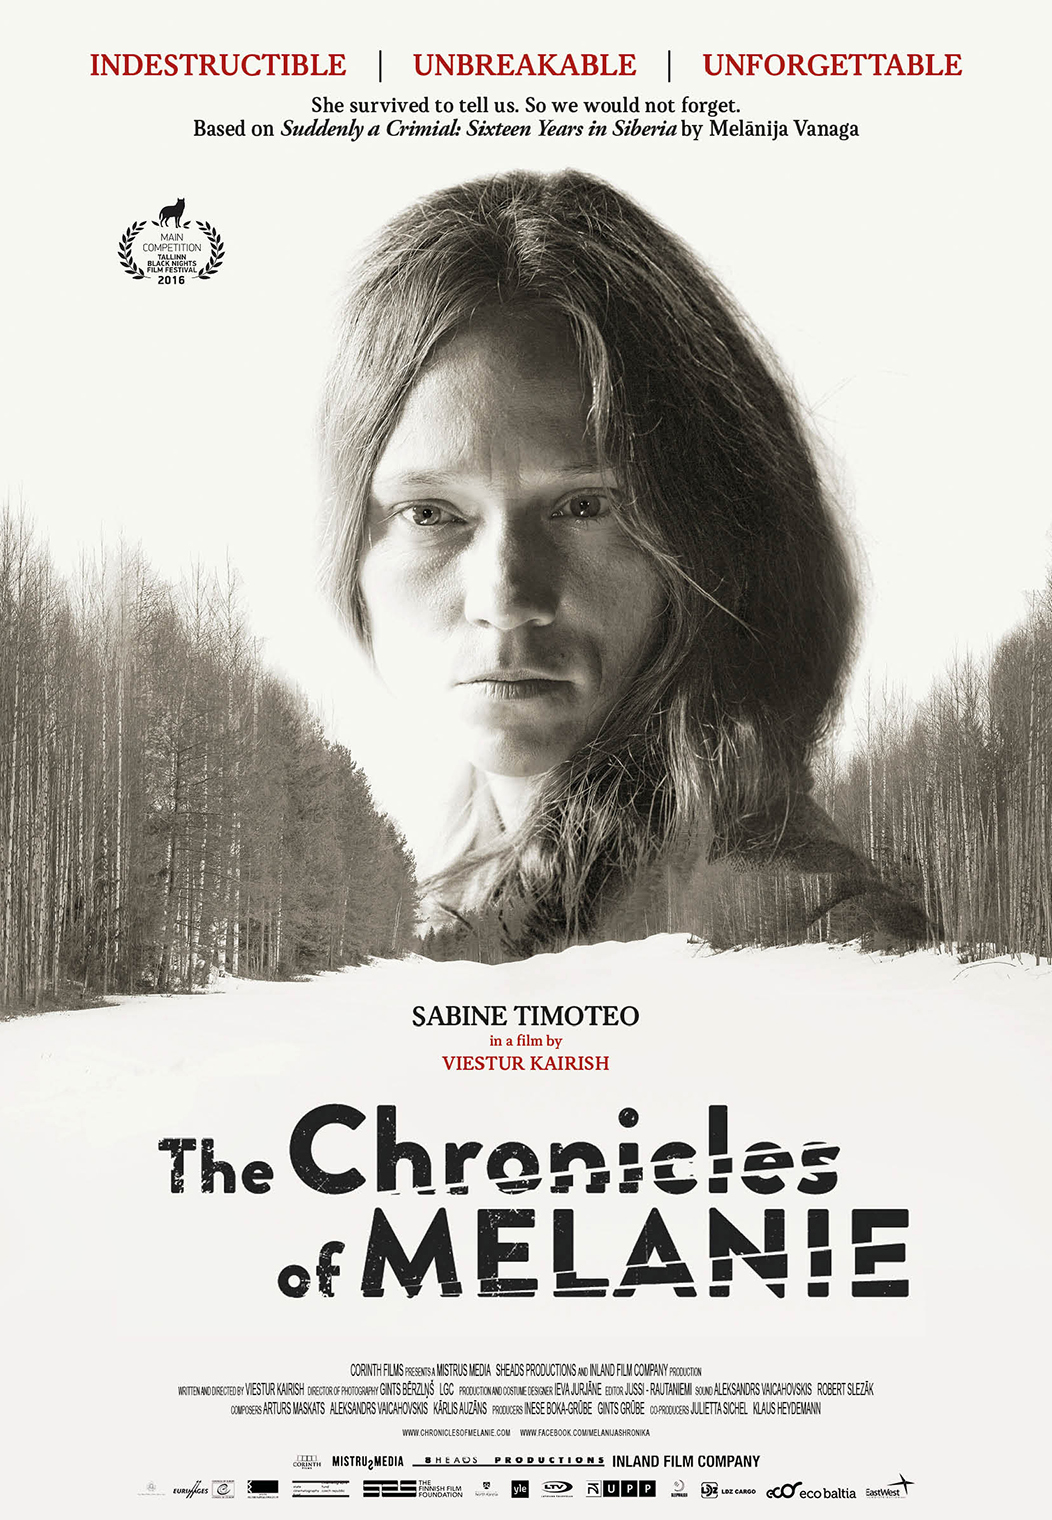 The Chronicles of Melanie Poster Art